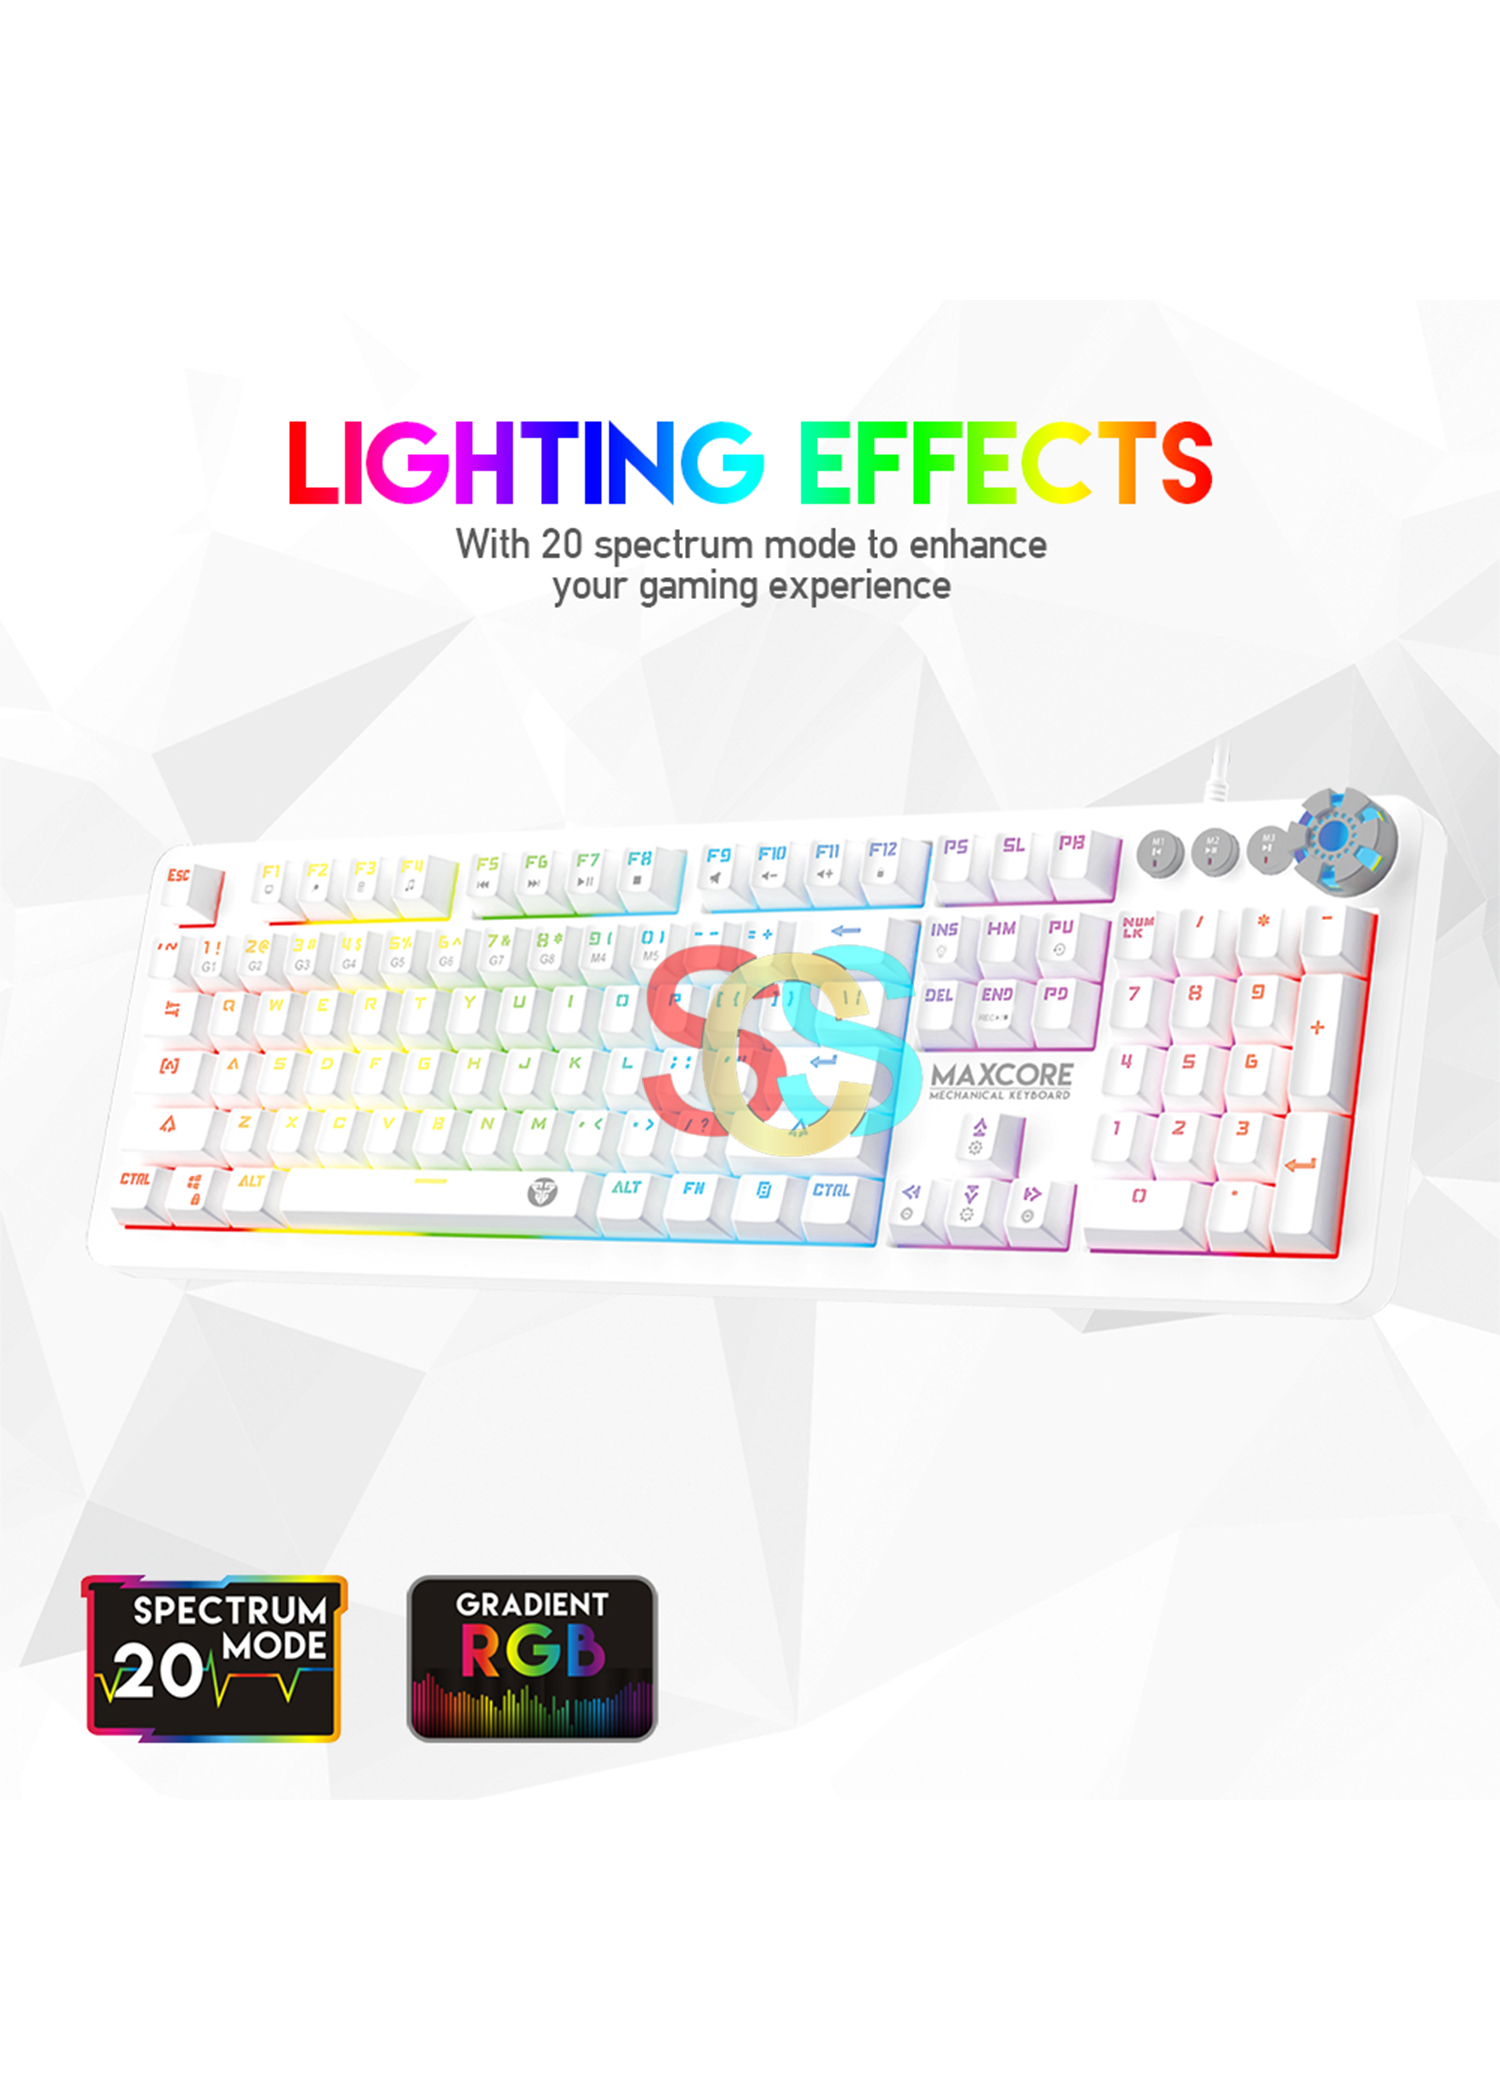 Fantech MK852 Maxcore Space White USB Gaming Keyboard